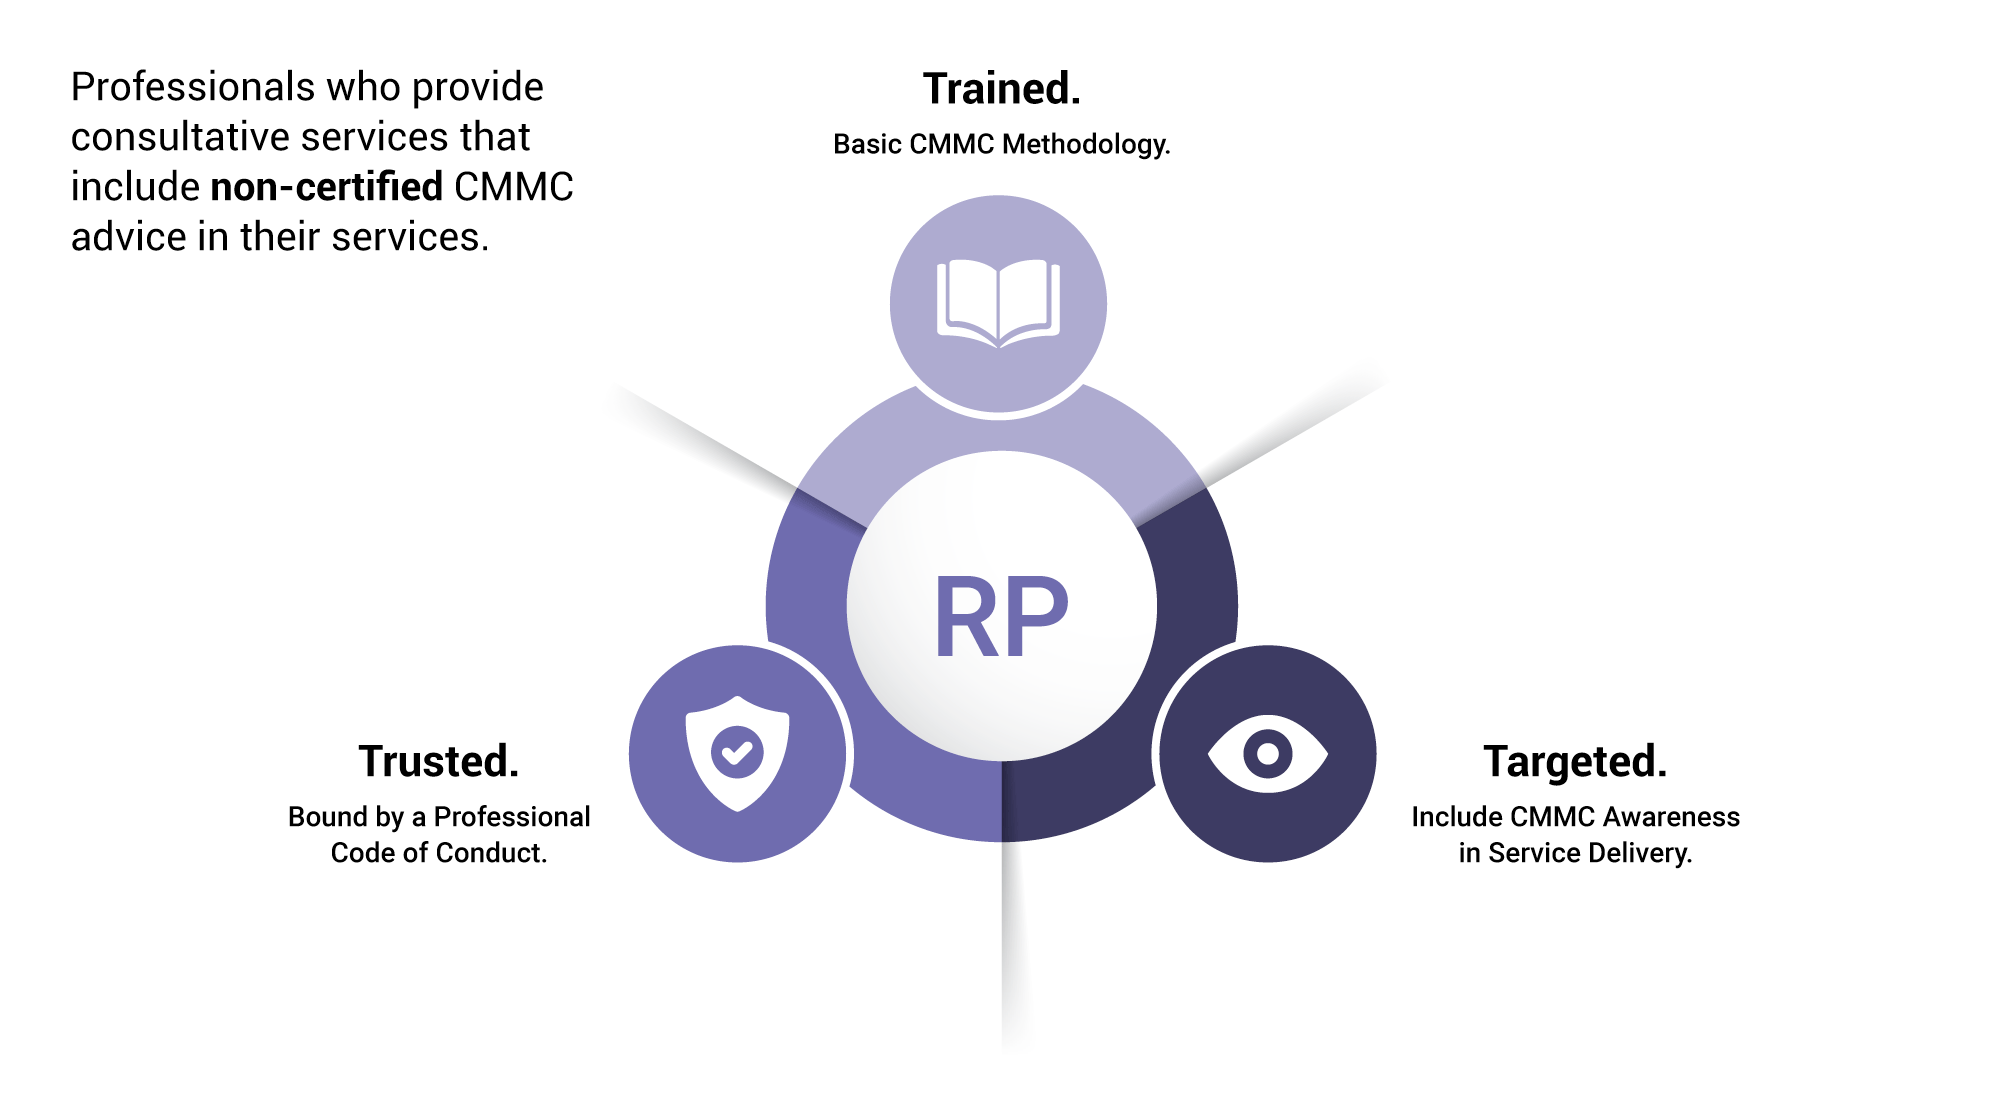 Infographic showing key characteristics of a Registered Practitioner